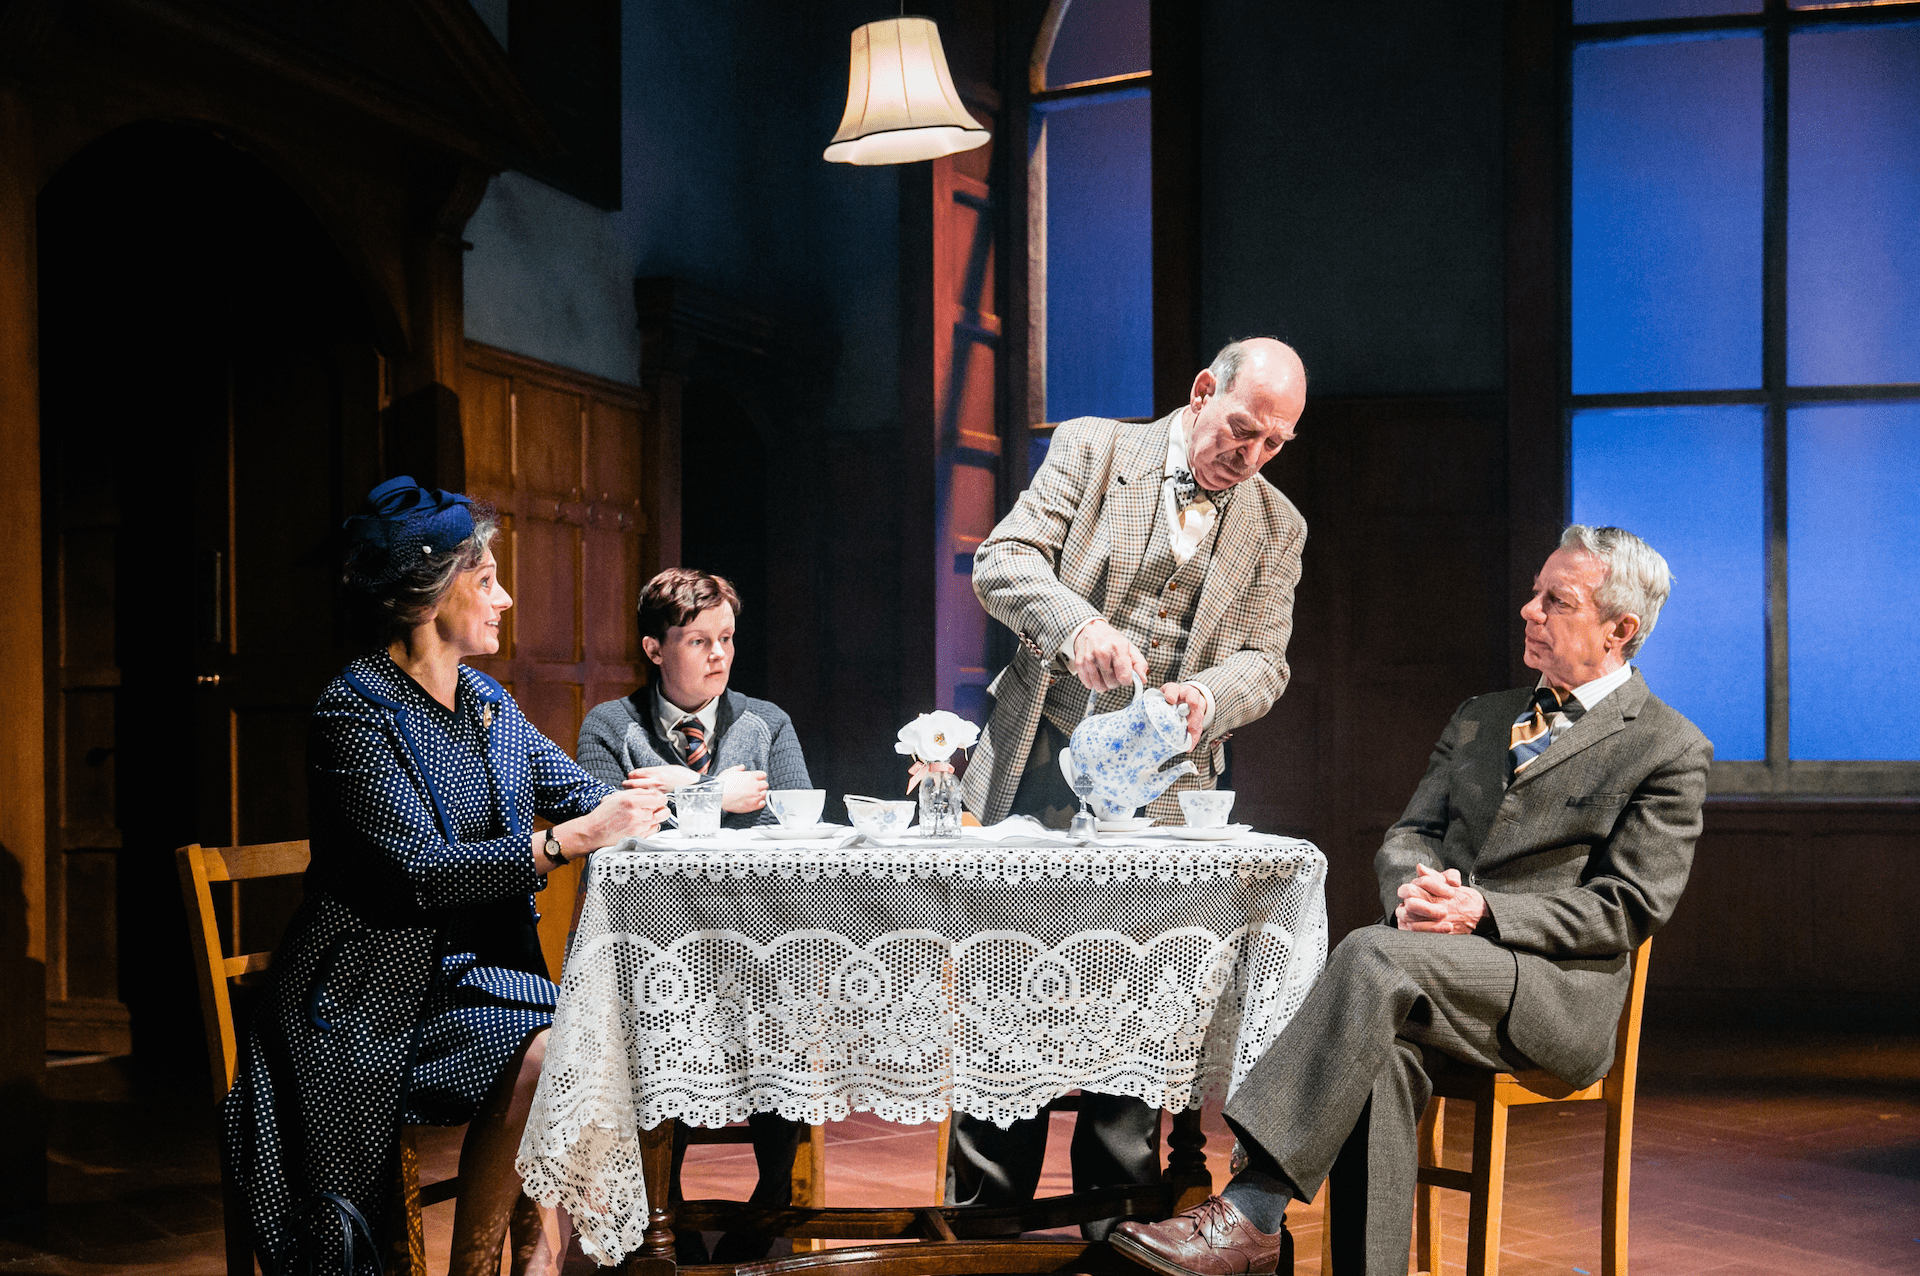 Amanda Ryan, Shannon Rewcroft, Denis Lill and Stephen Boxer in Shadowlands. Credit: Jack Ladenburg